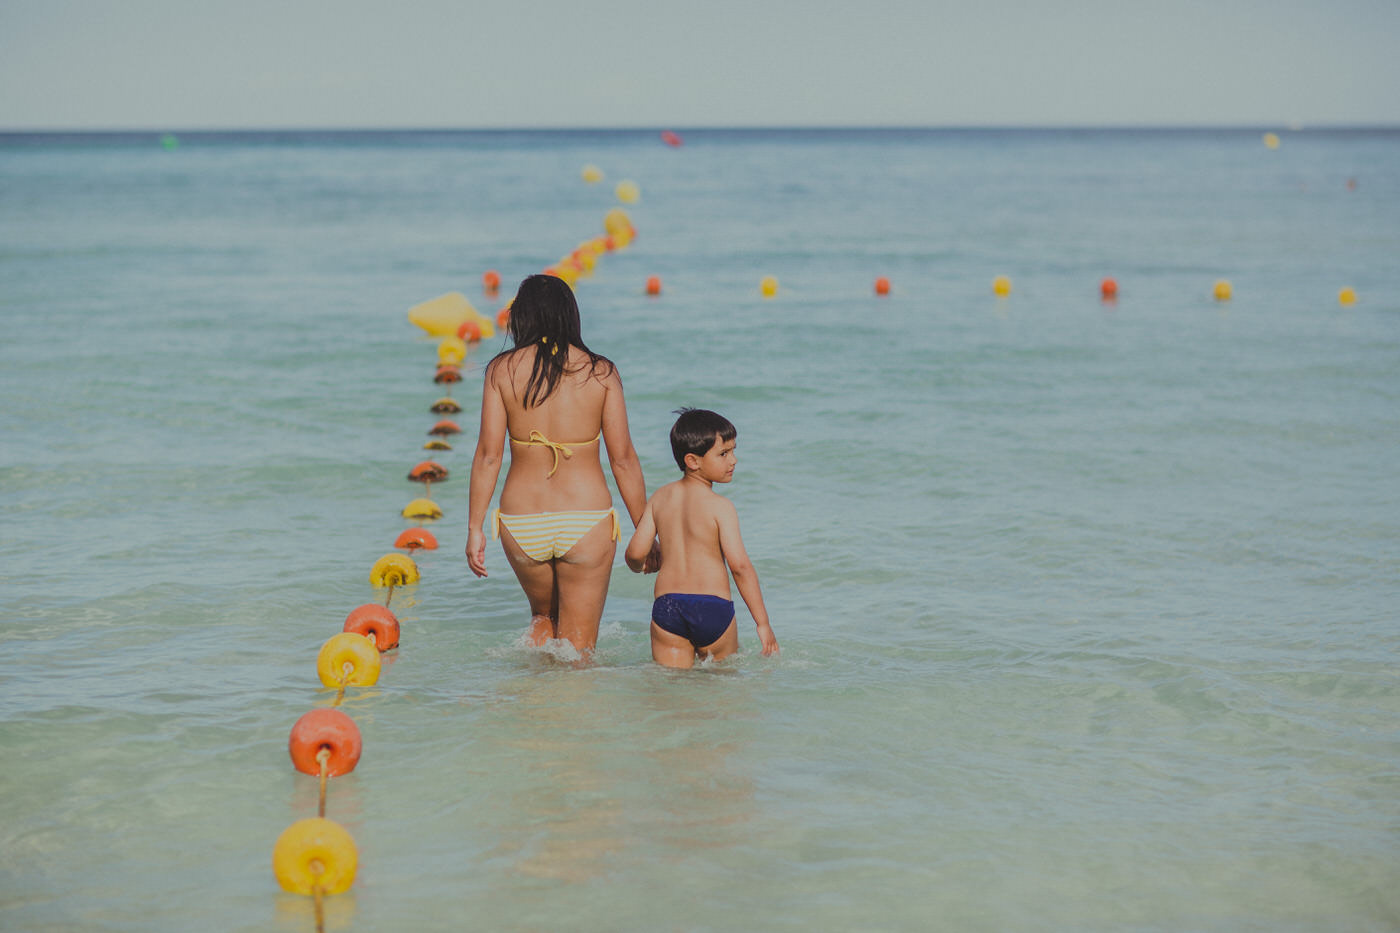 mother and son in the ocean walking along some yellow and orange buoys - happy beach llife